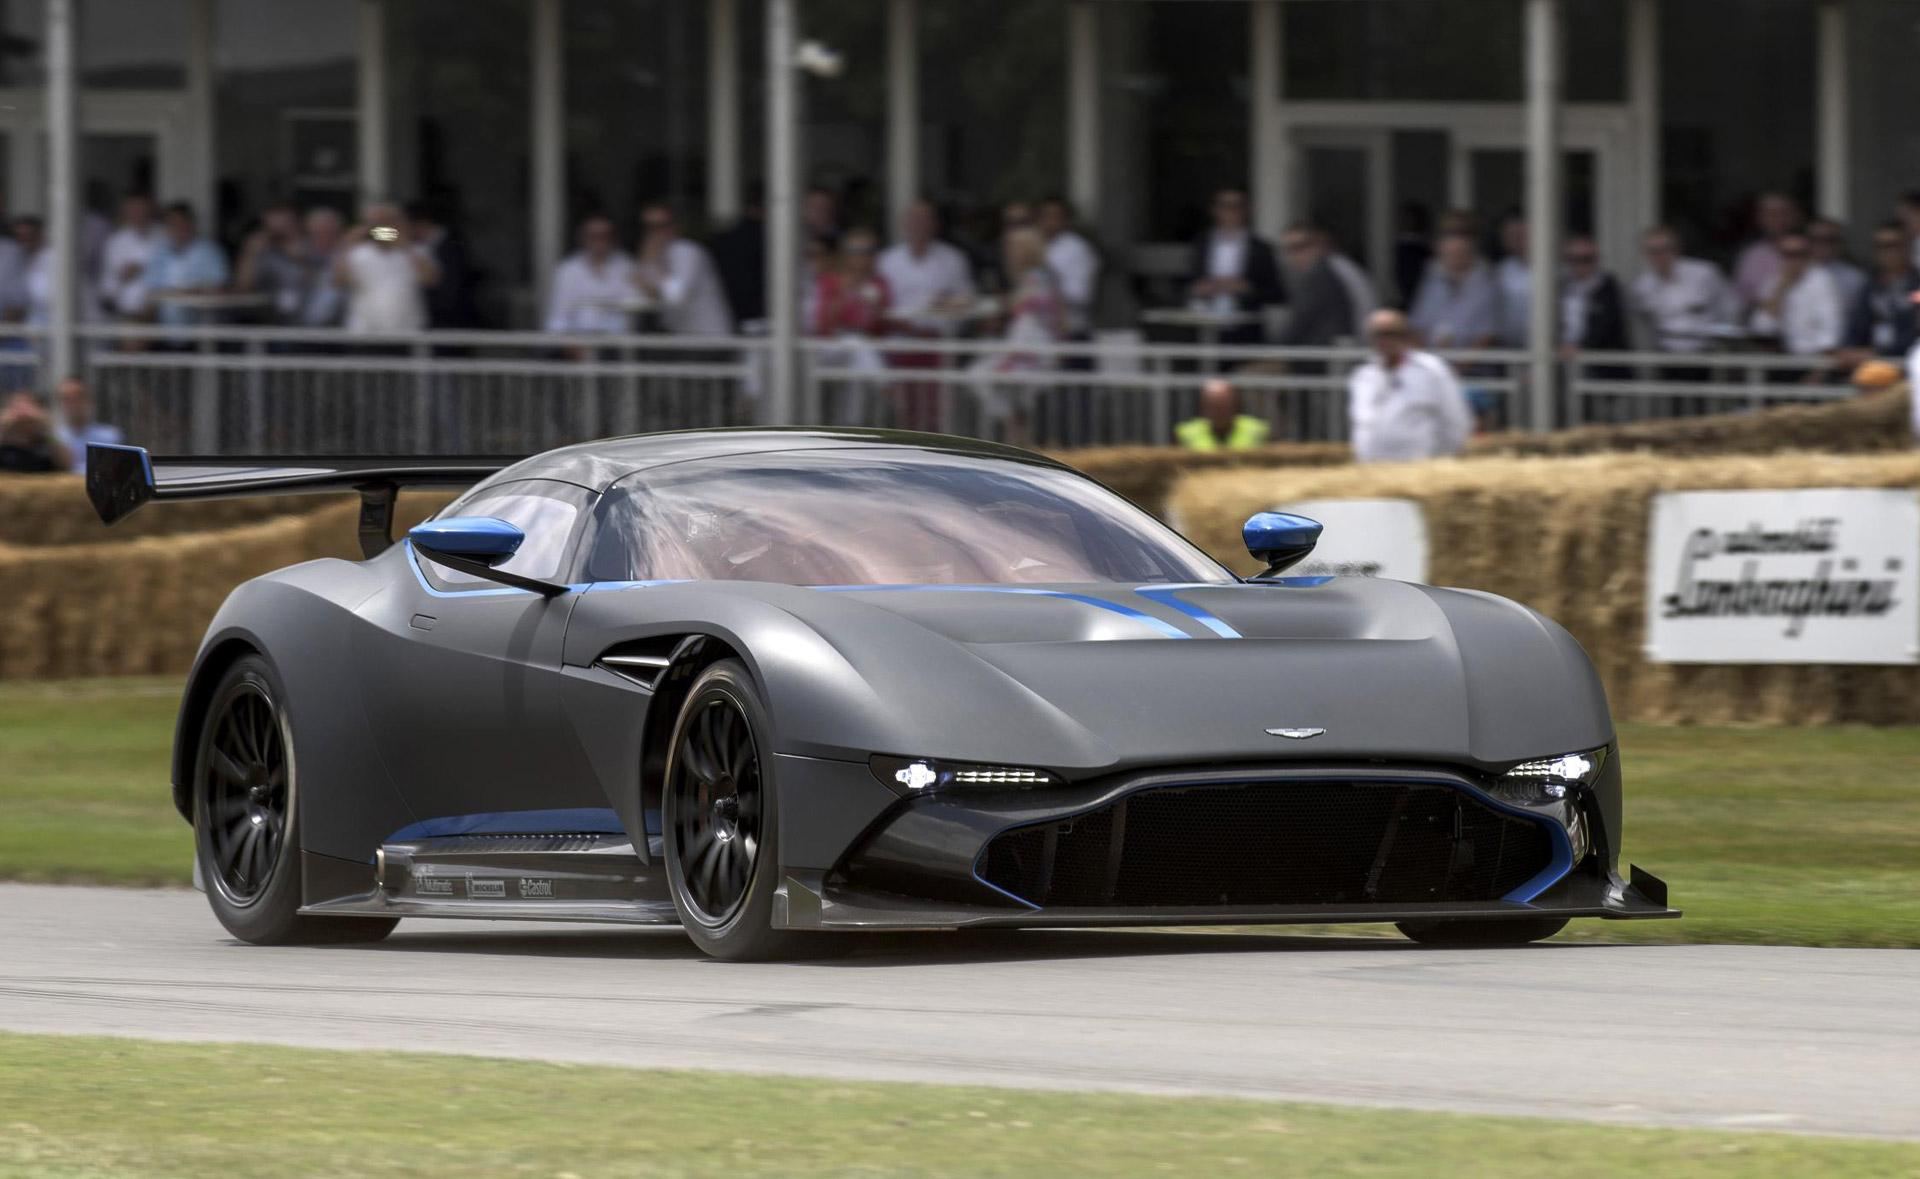 aston-martin-vulcan-2015-goodwood-festival-of-speed_100516678_h